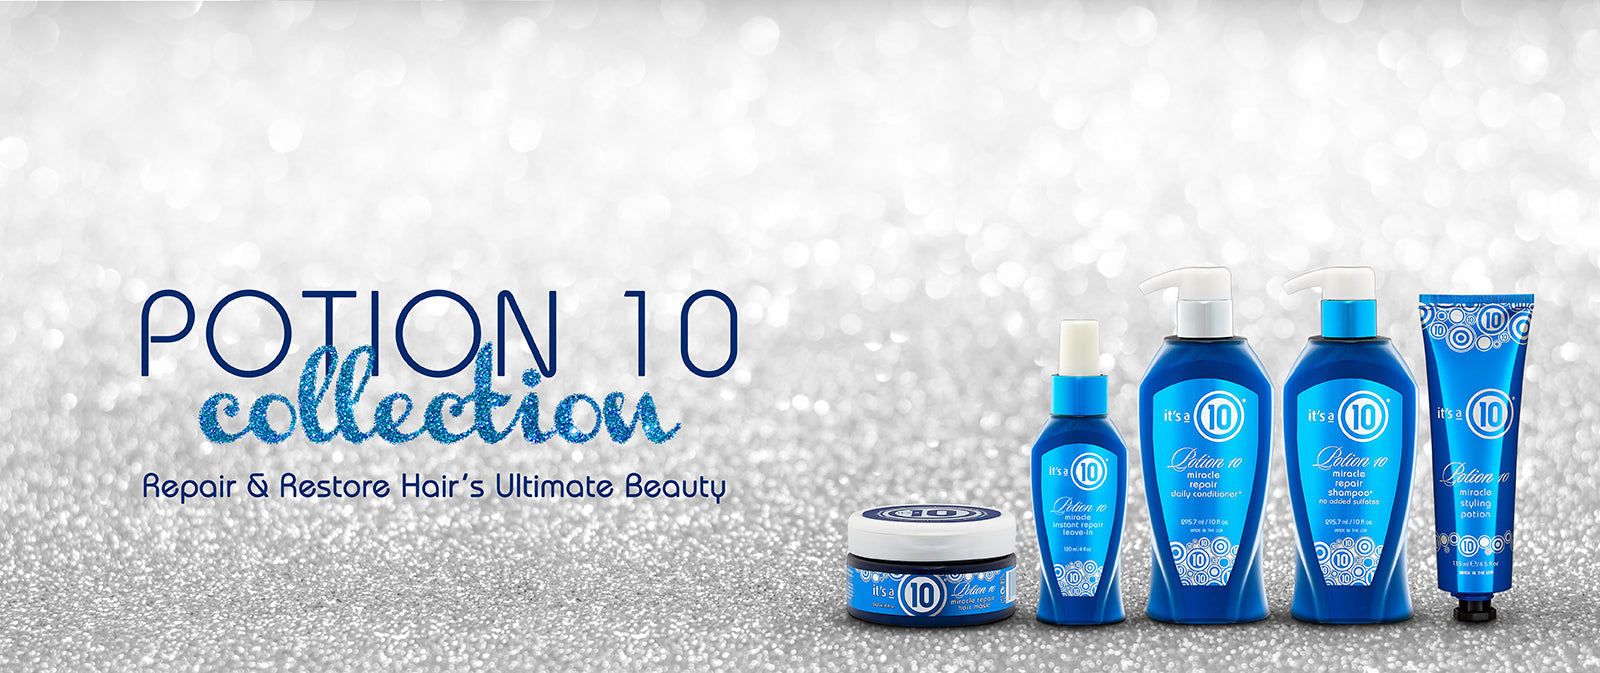 Potion 10 Collection